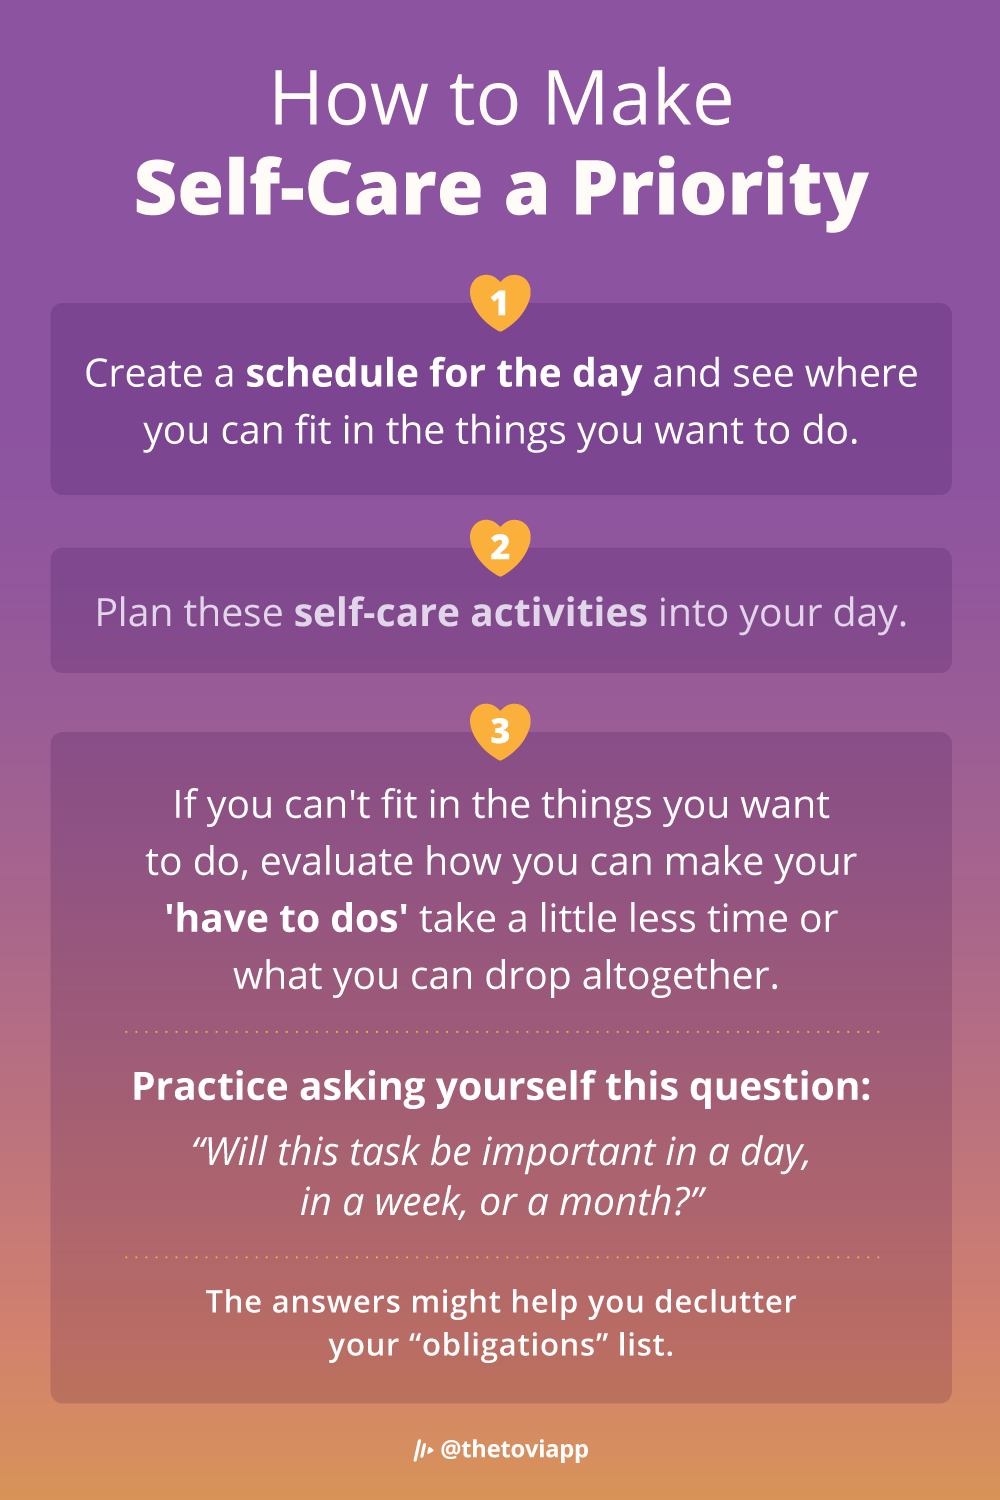 An infographic explaining how to make self-care a priority